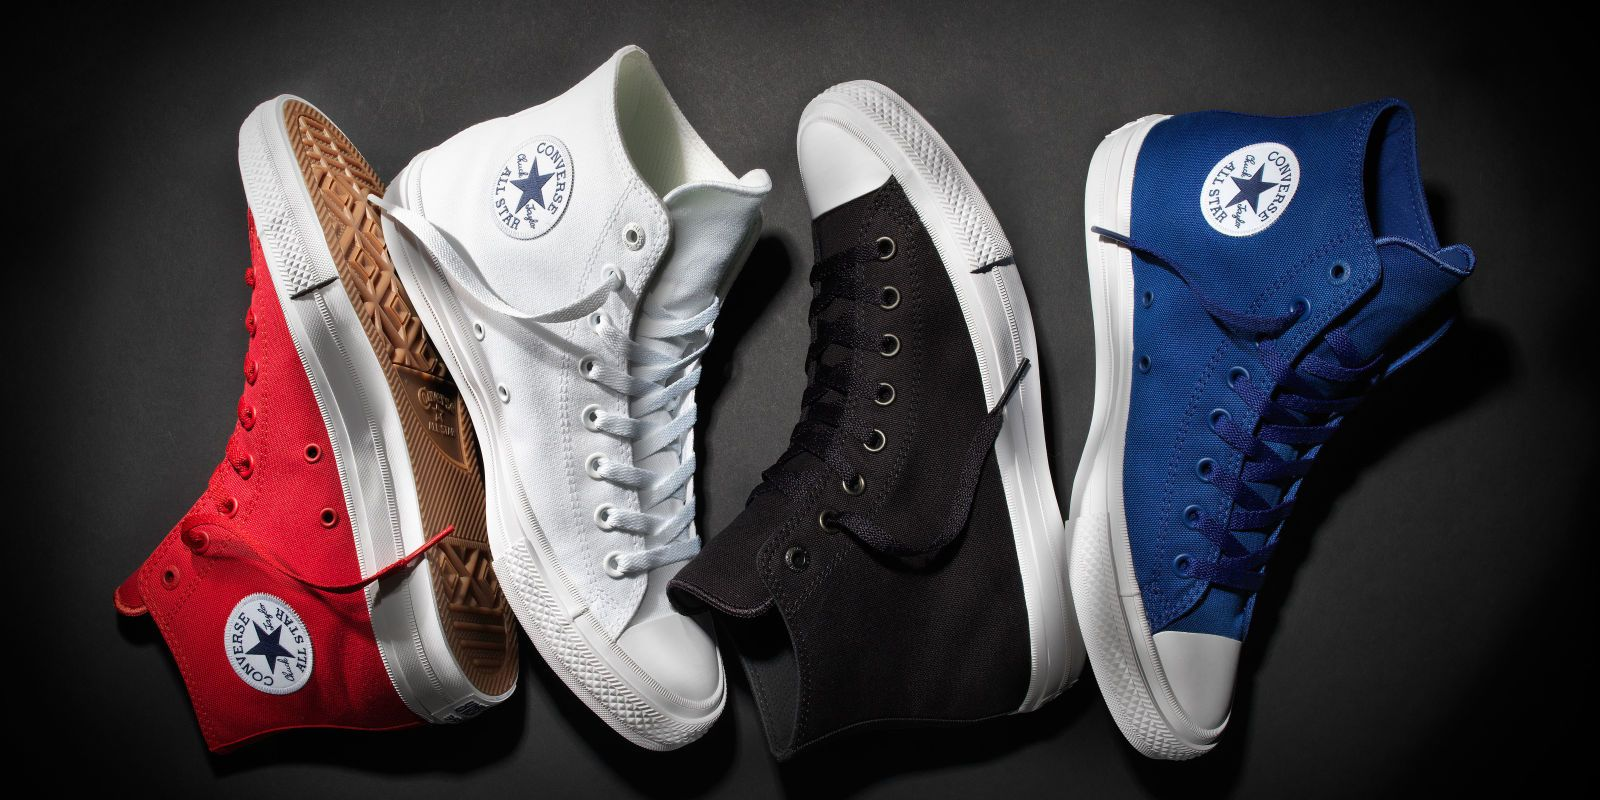 apoyo portón asesinato  After 98 Years, Converse Updates the Chuck Taylor | Chucks converse, Chuck  taylor shoes, Chuck taylors